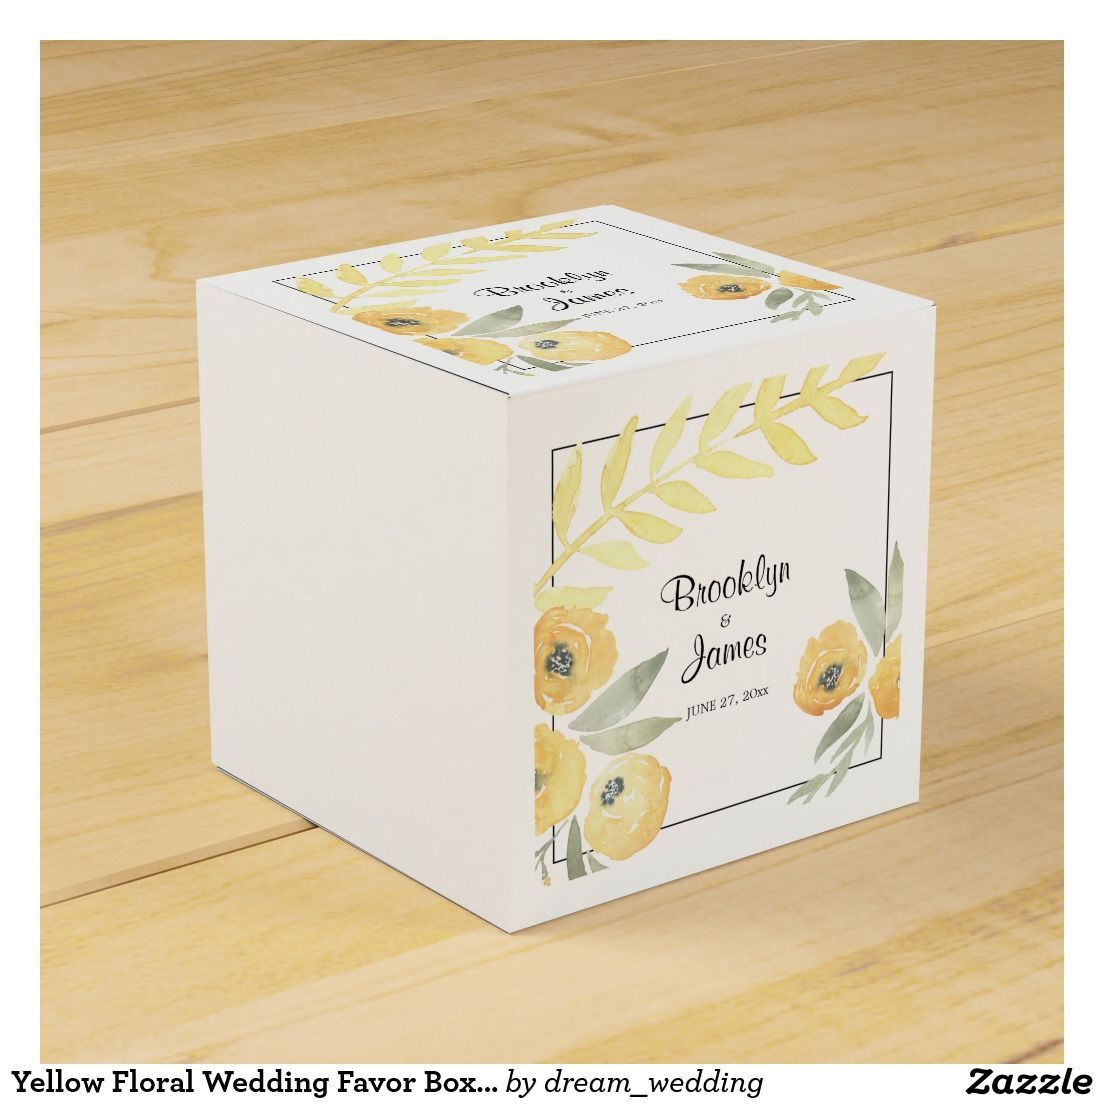 Yellow Floral Wedding Favor Boxes | All Zazzle | Pinterest